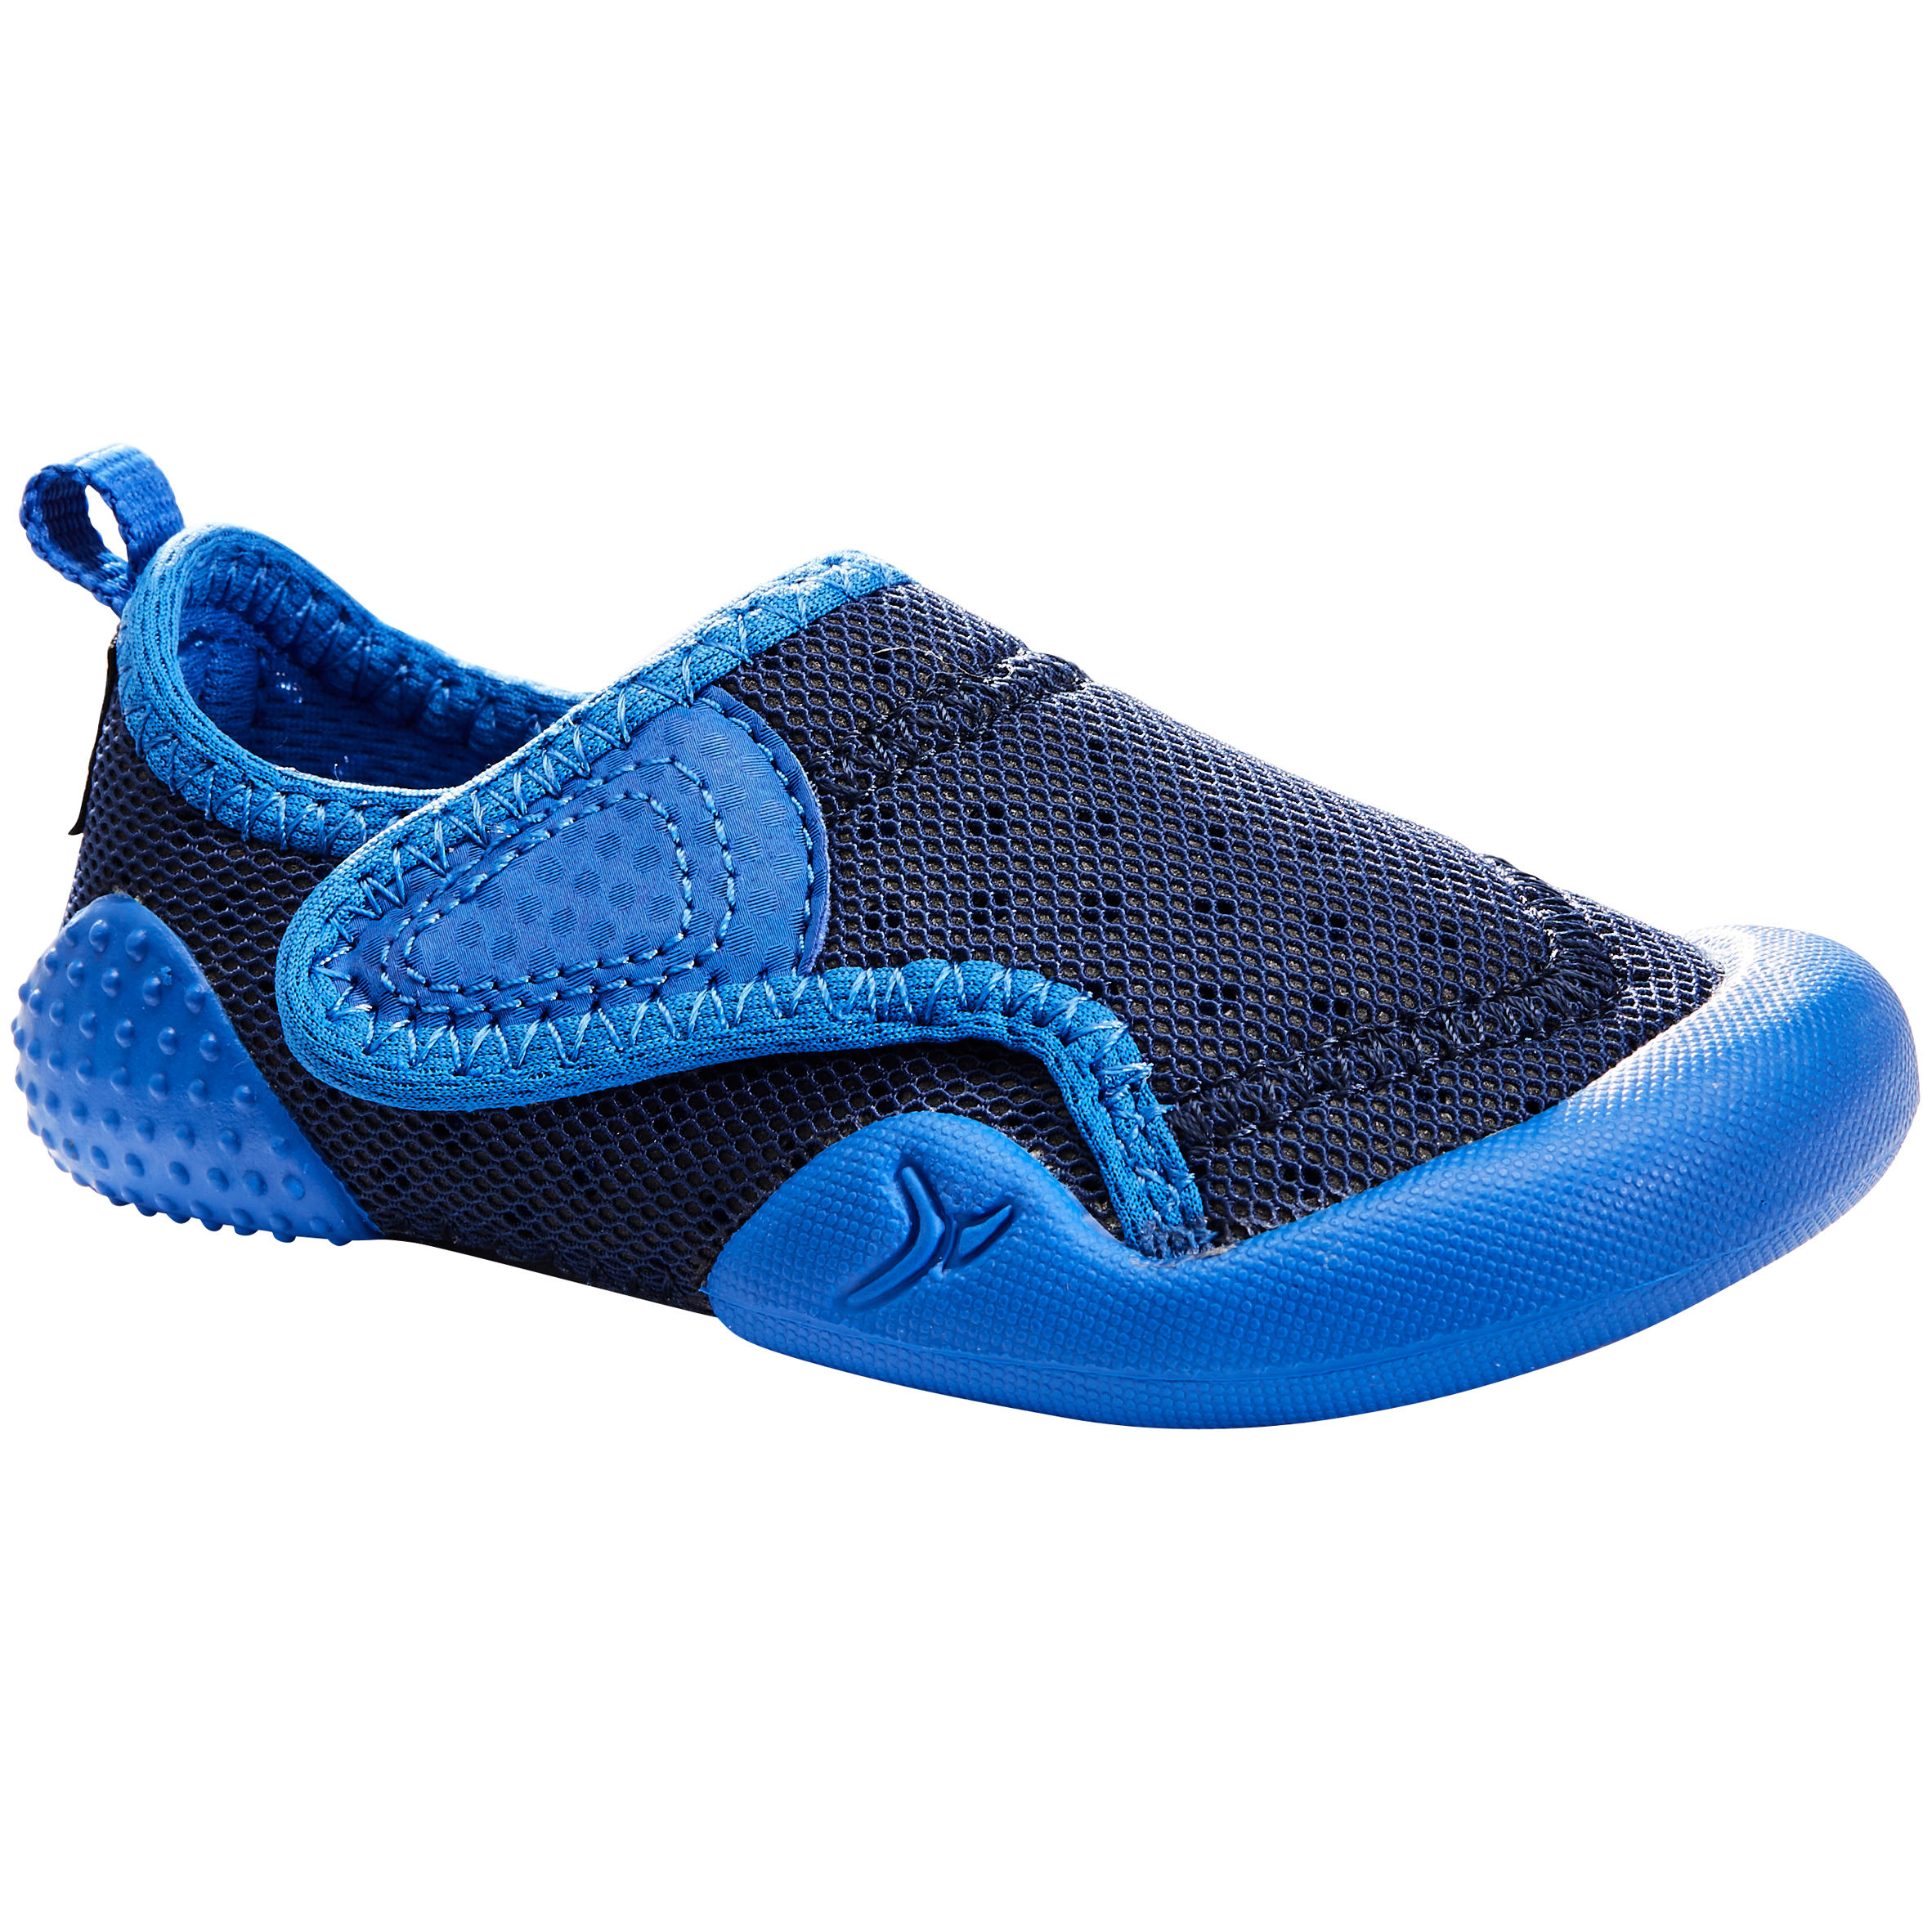 Babylight Baby Gym Booties - Biru